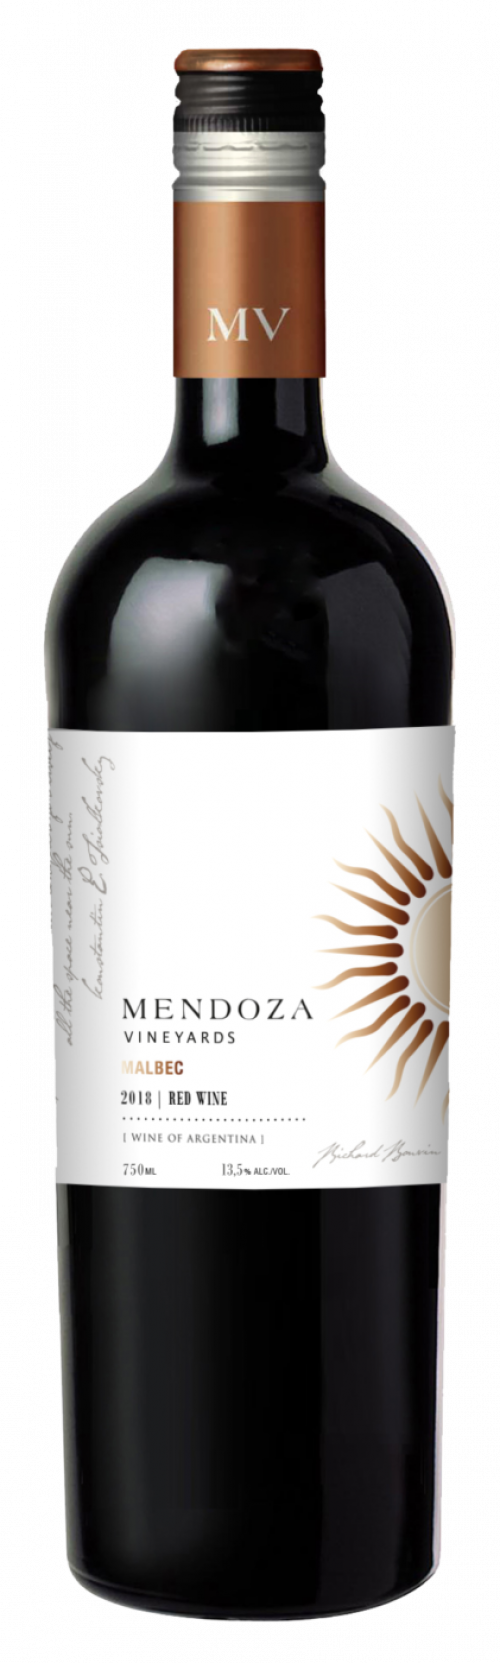 Mendoza Vineyards Malbec 750ml